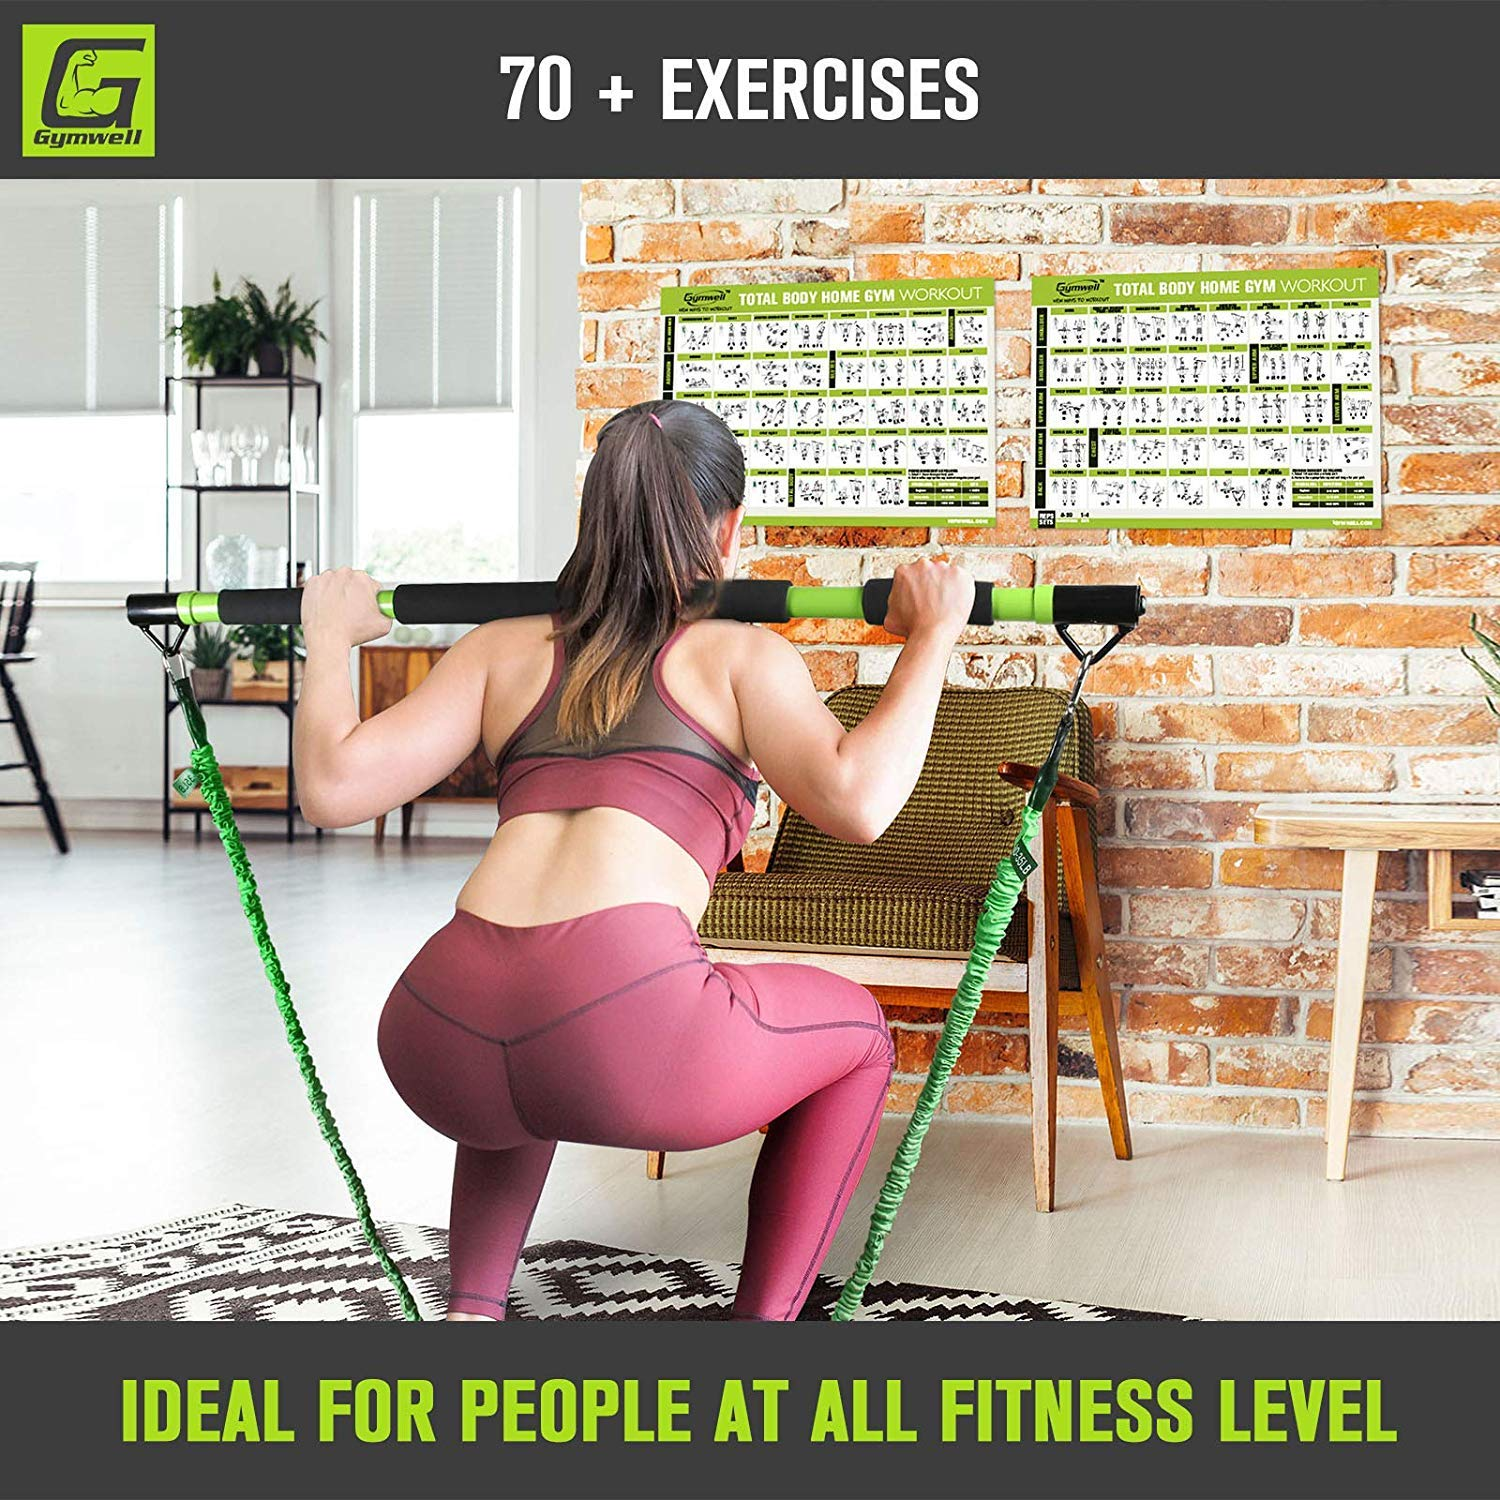 Gymwell Portable Resistance Workout Set, Total Body Workout Equipment for Home, Office or Outdoor with 3 Sets of Resistance Bands (Green - Full Gym) by Gymwell (Image #6)